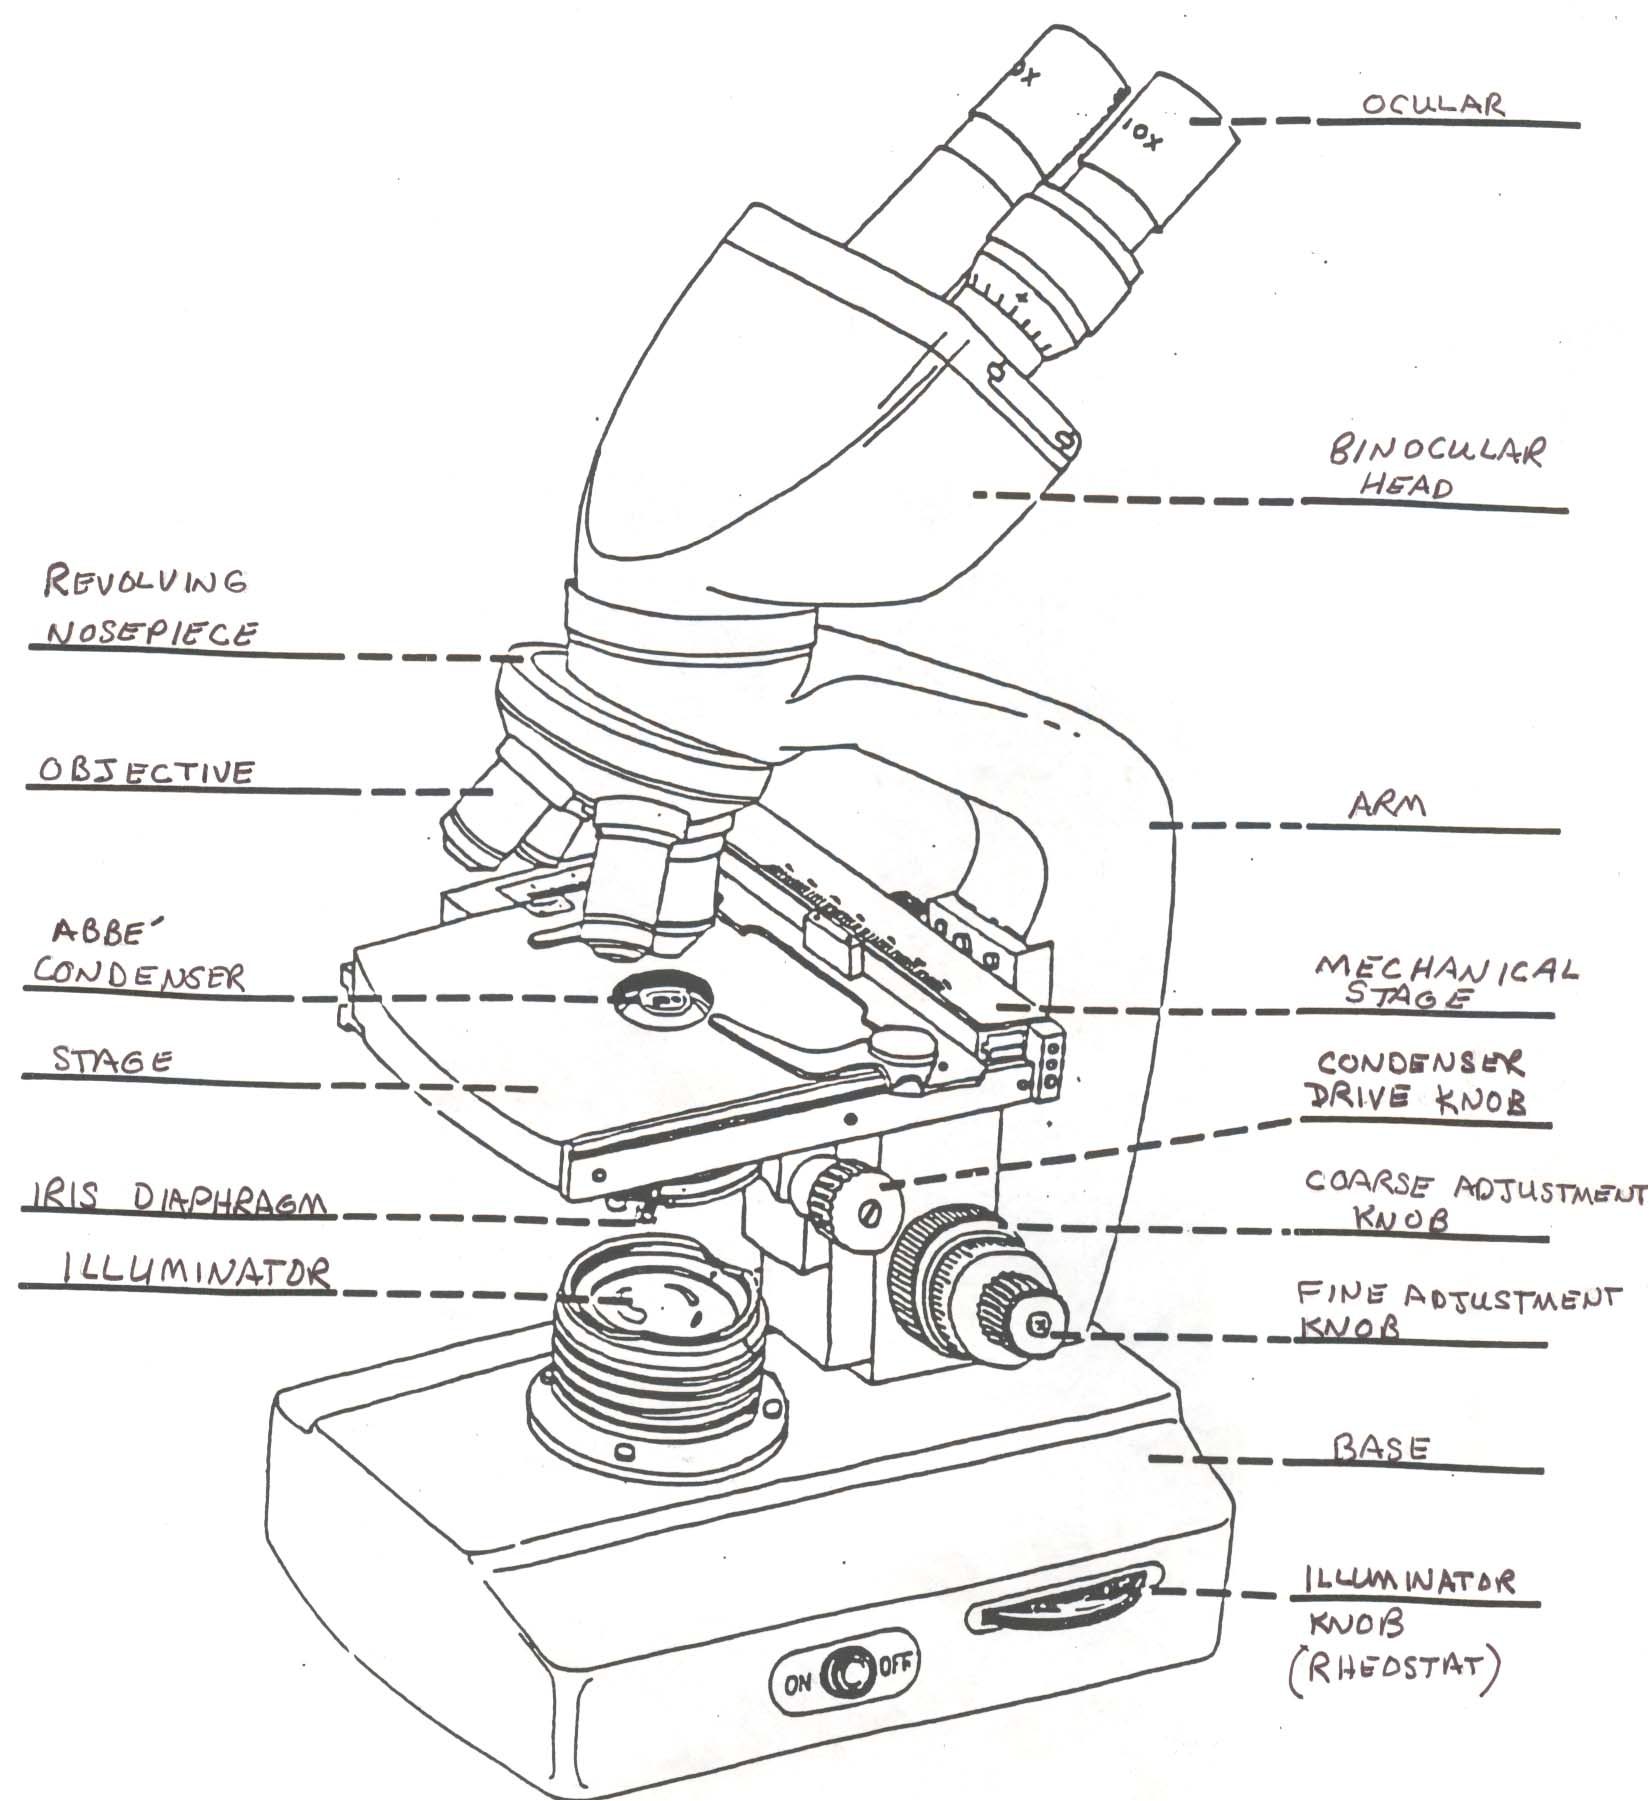 Microscope Sketch Template At Paintingvalley